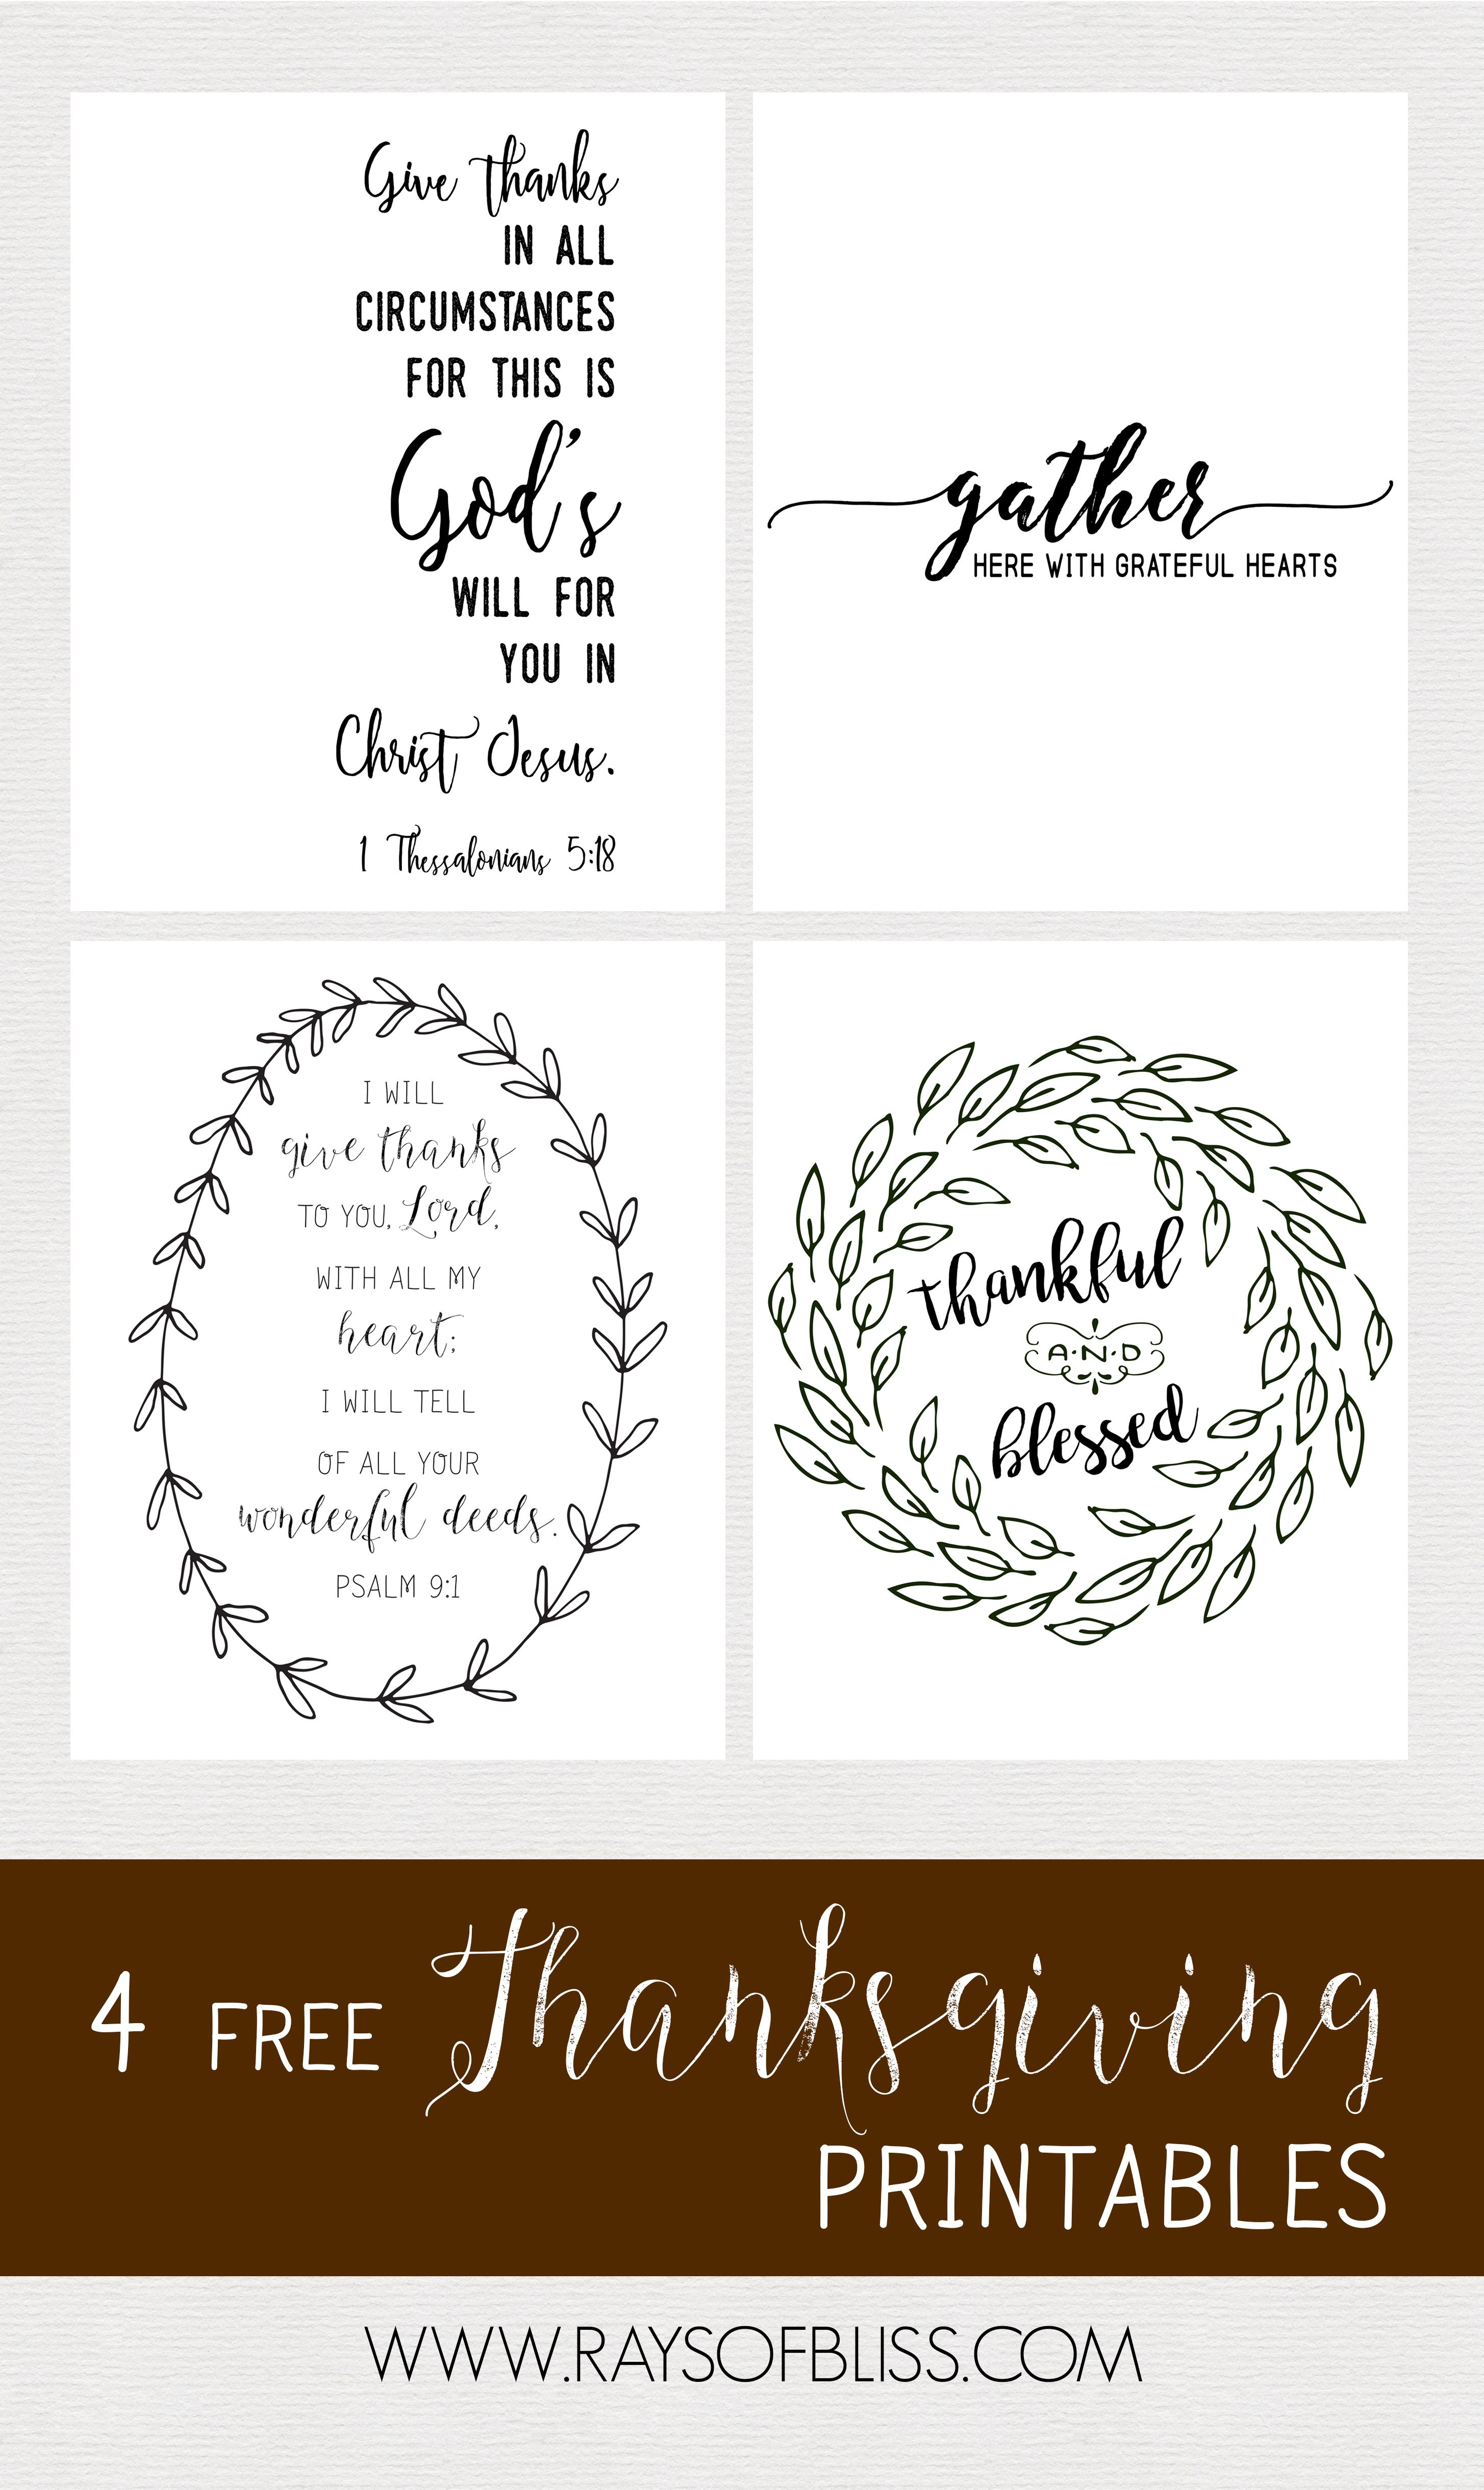 Free Printable For 12 Months Of Pre Planned Date Nights: 4 Thanksgiving Free Printables Bible Verses & Quotes: 1